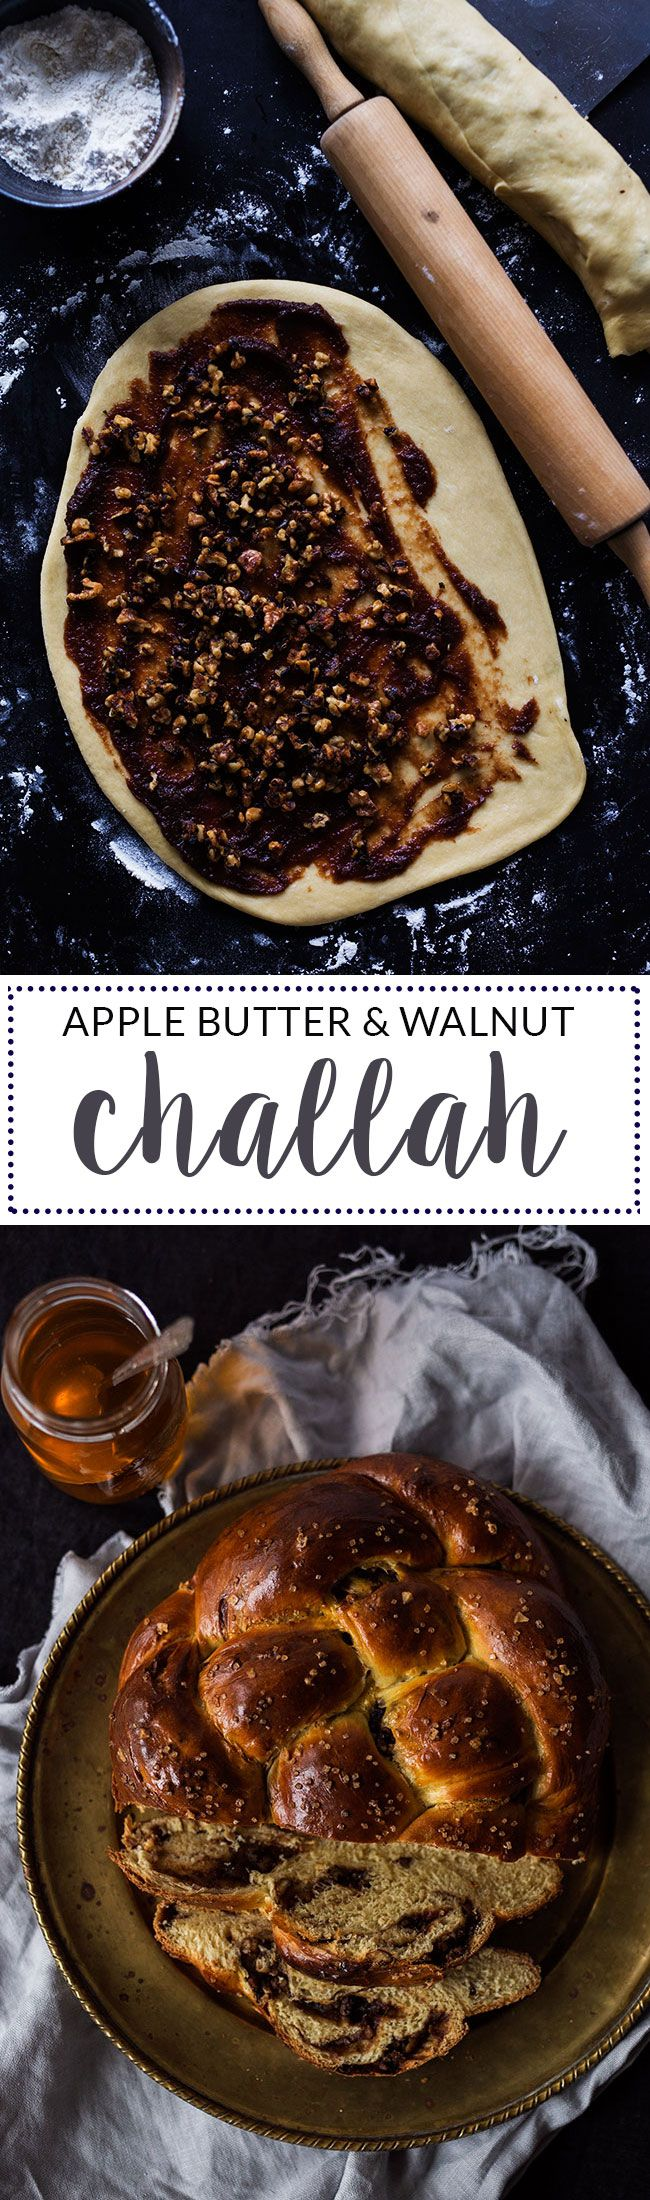 Stuffed challah with apple butter and walnuts: a great recipe for Rosh Hashanah | One Tough Cookie